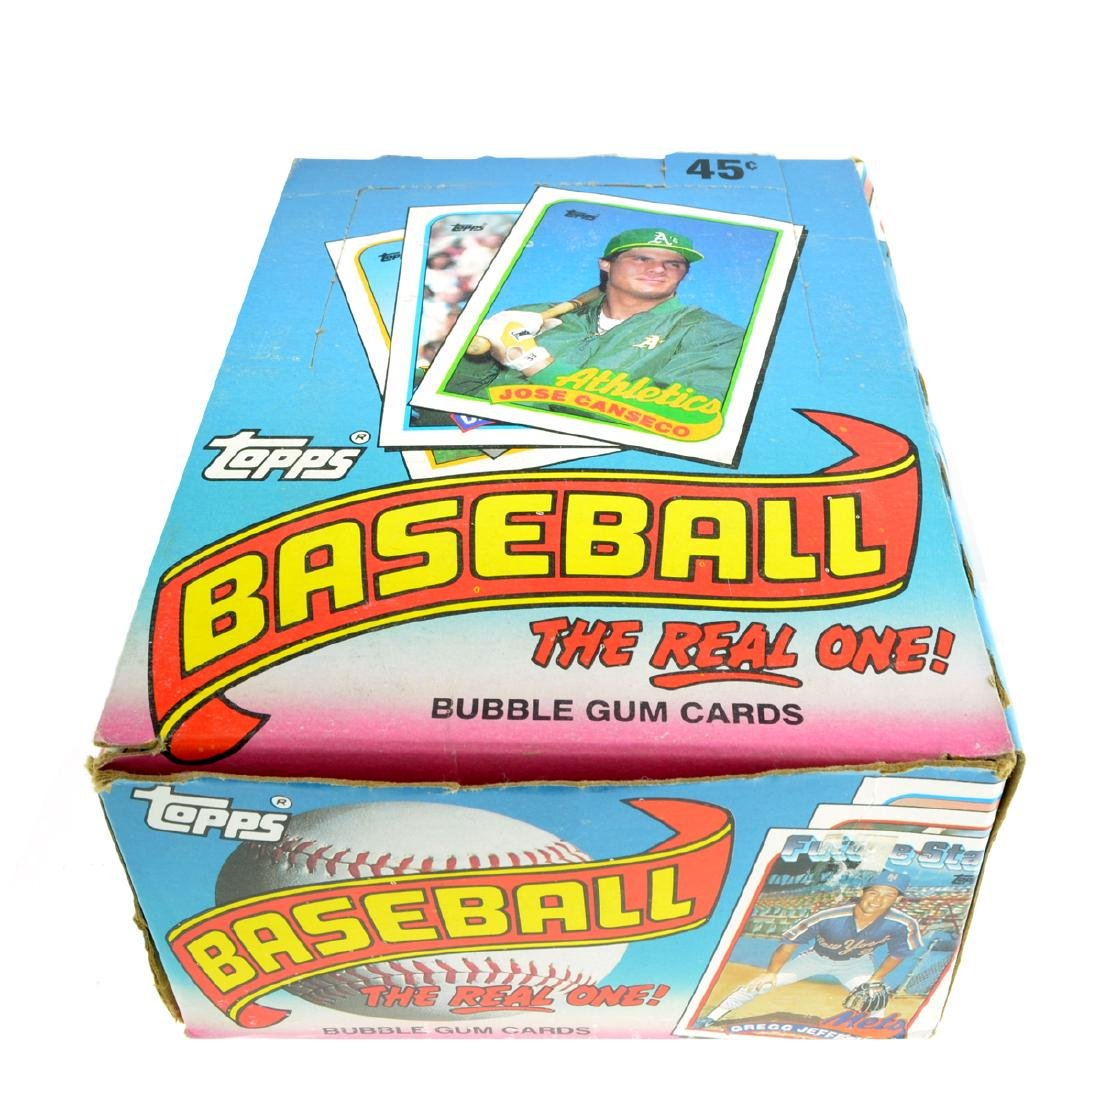 1989 Box Of Topps Bubble Gum Baseball Cards 36ct